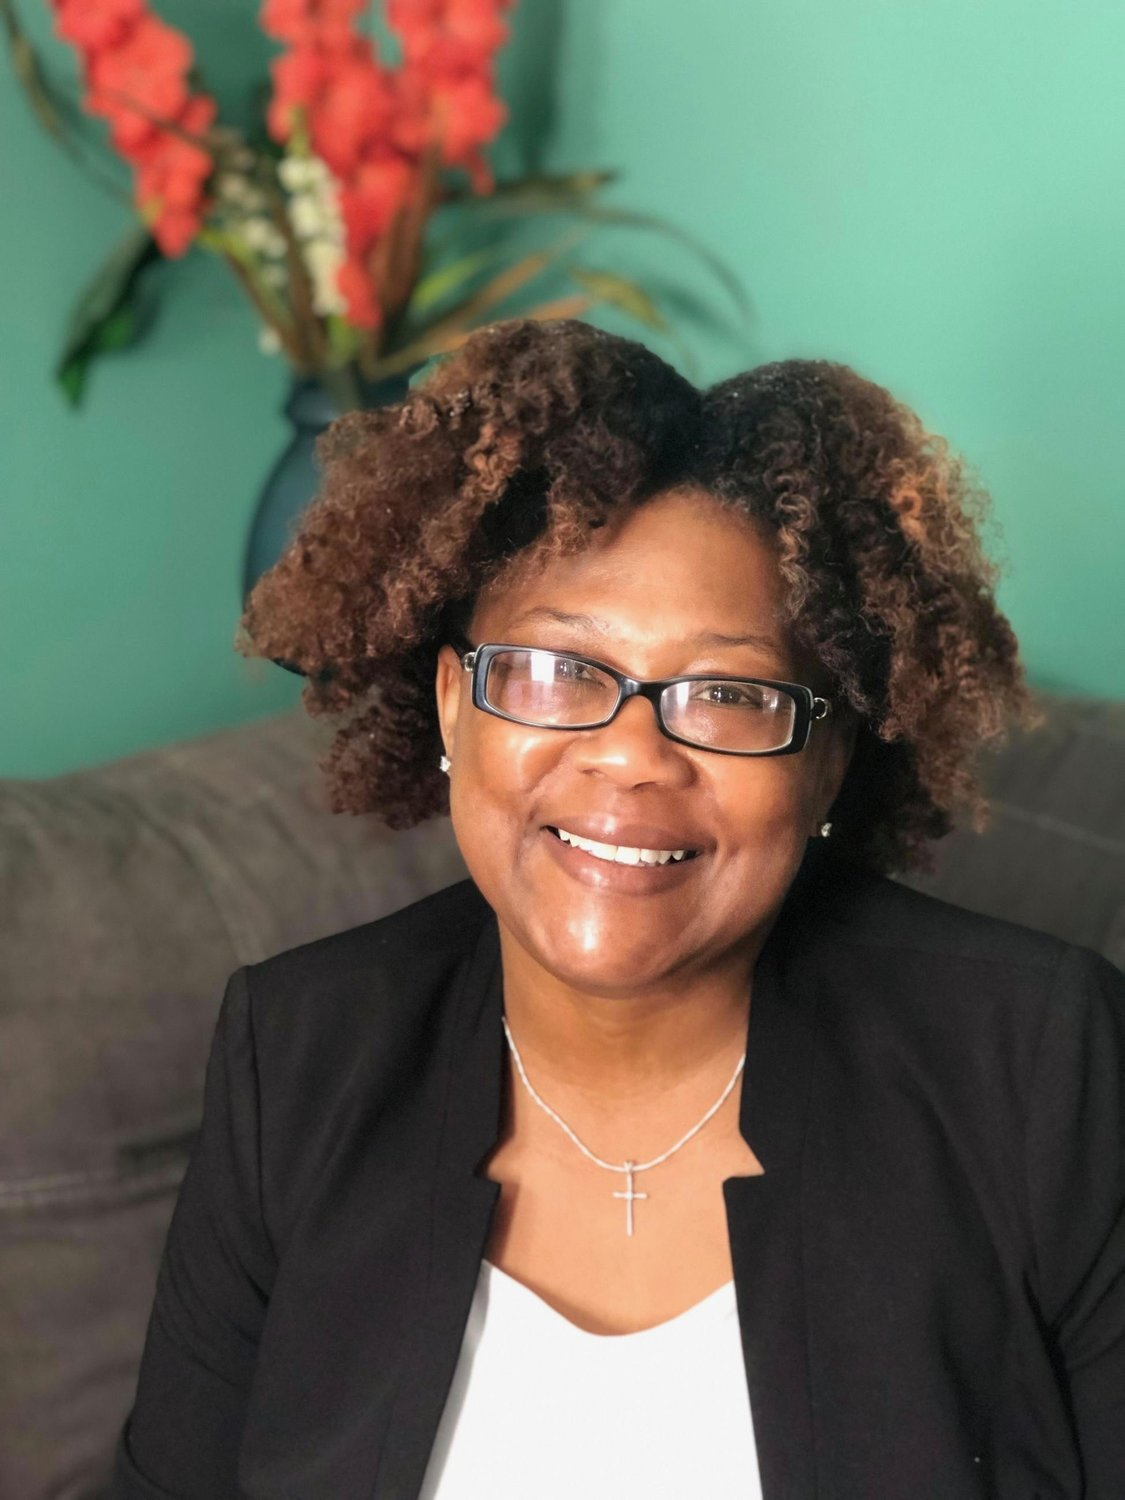 Marilyn Harris is now Drury's chief human resources and diversity and inclusion officer.